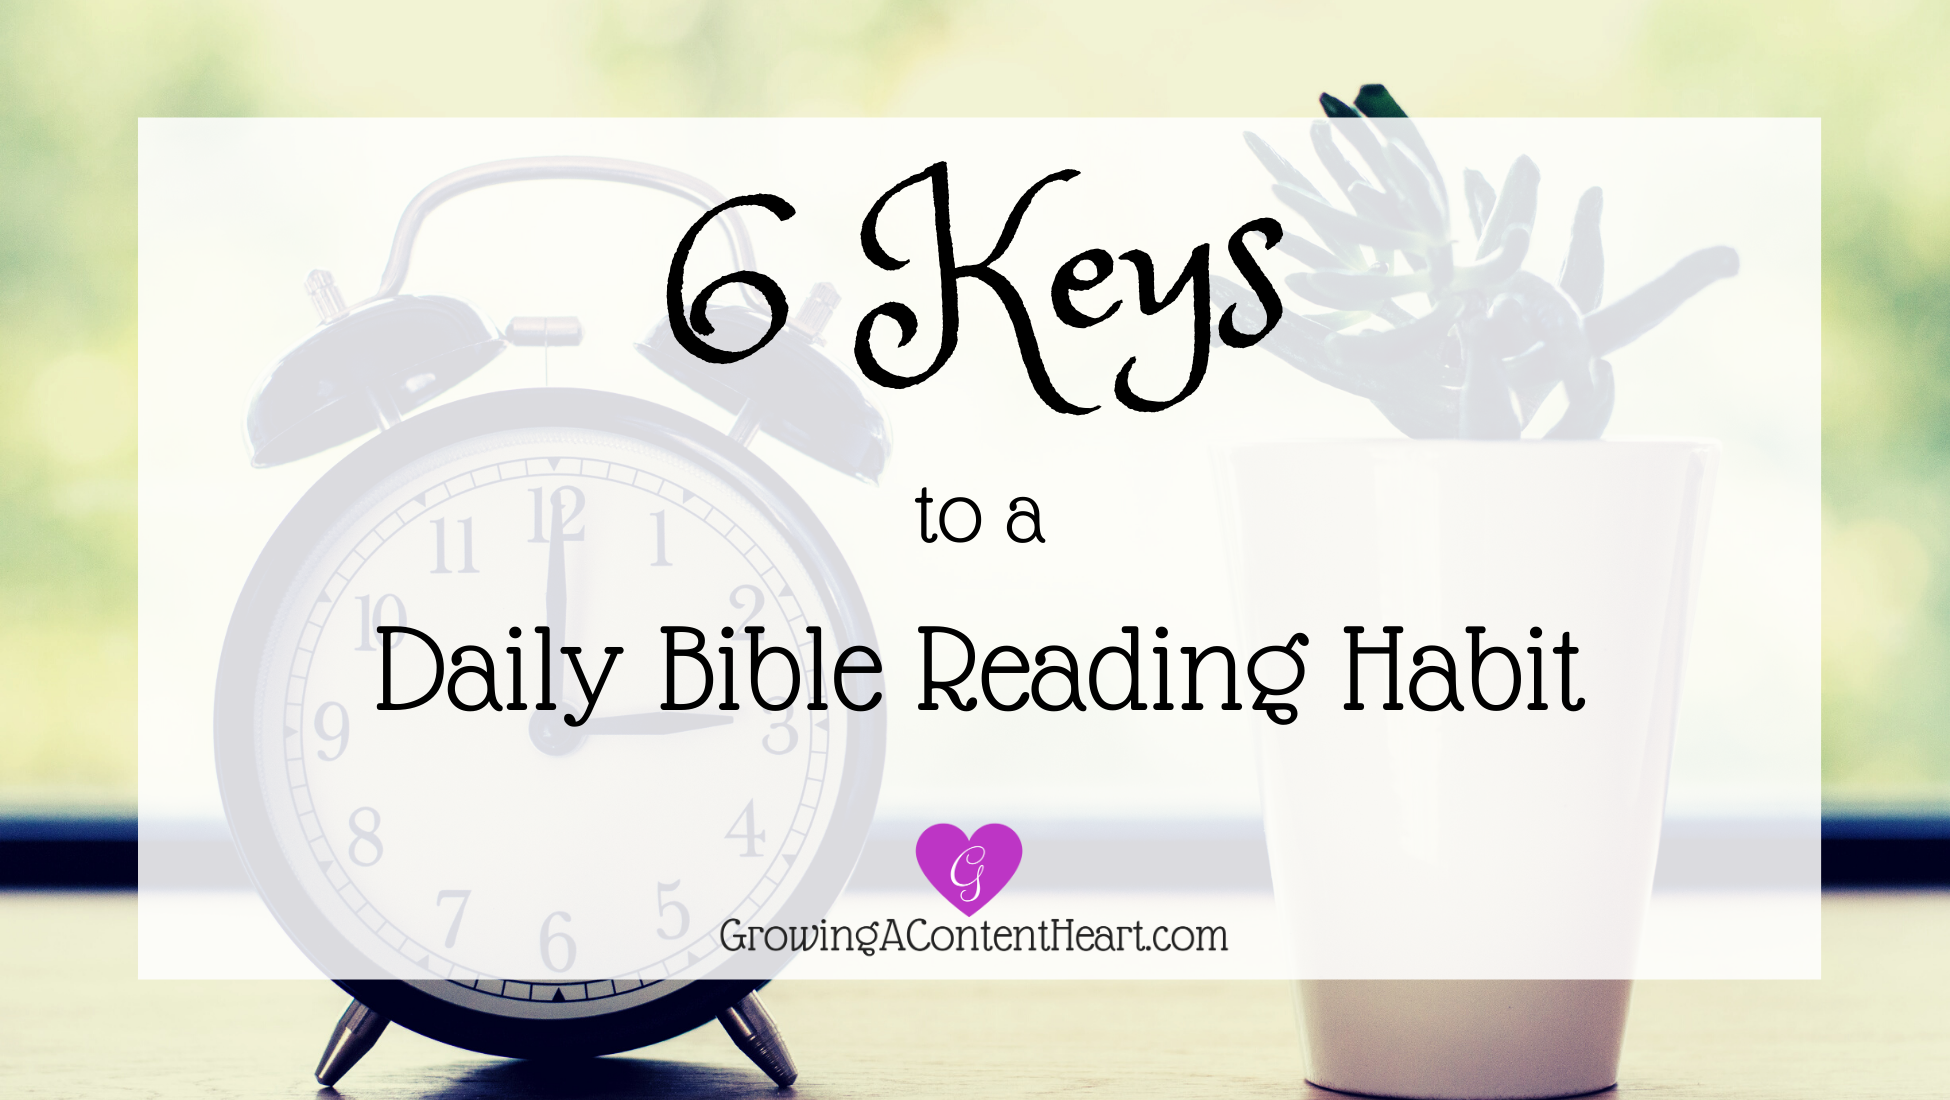 6 Keys to a Daily Bible Reading Habit - Growing a Content Heart